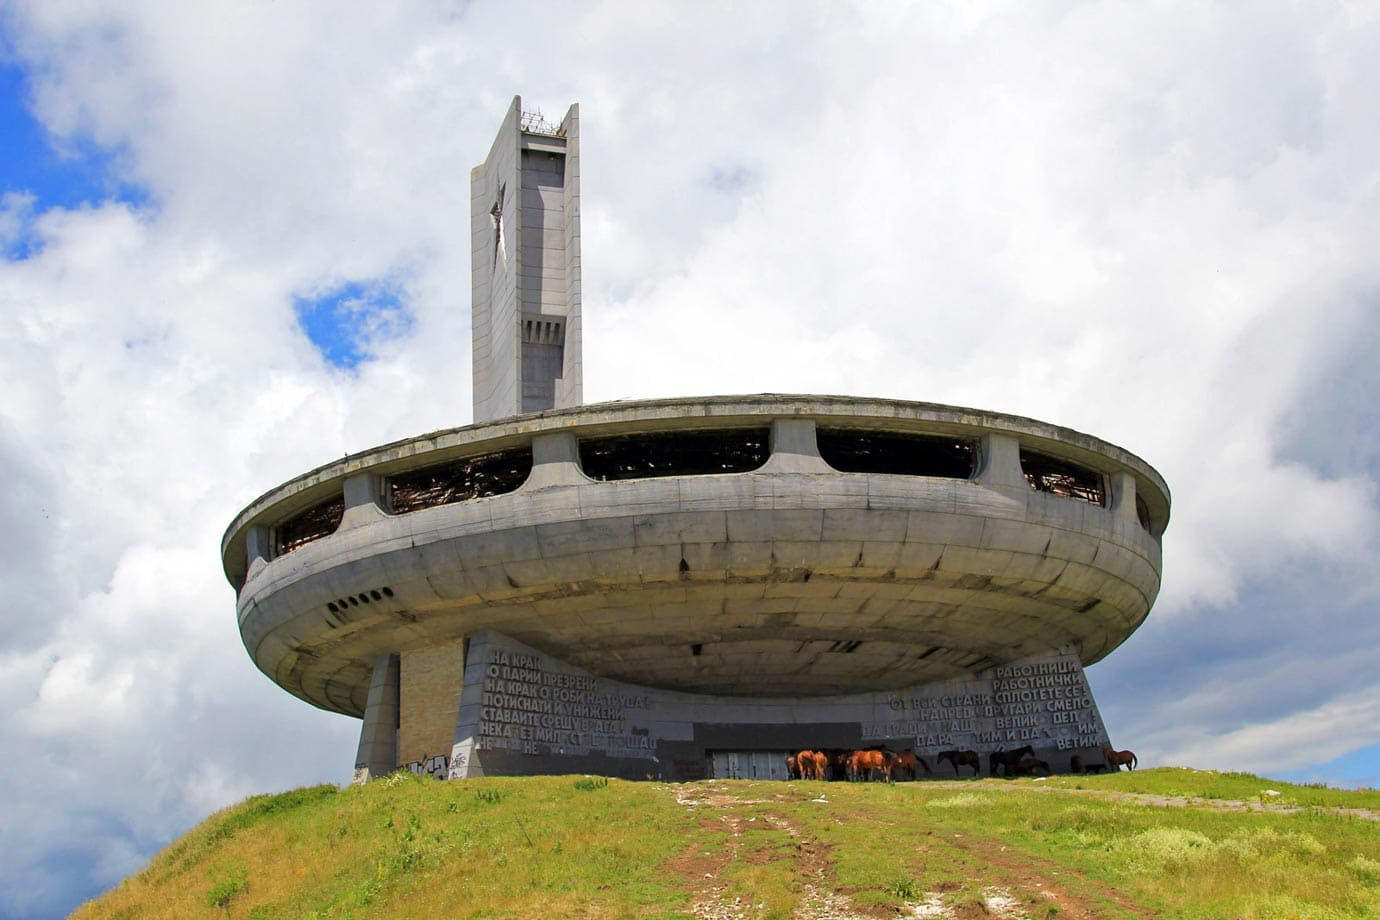 Buzludzha was one of the most extravagant monuments I have ever seen